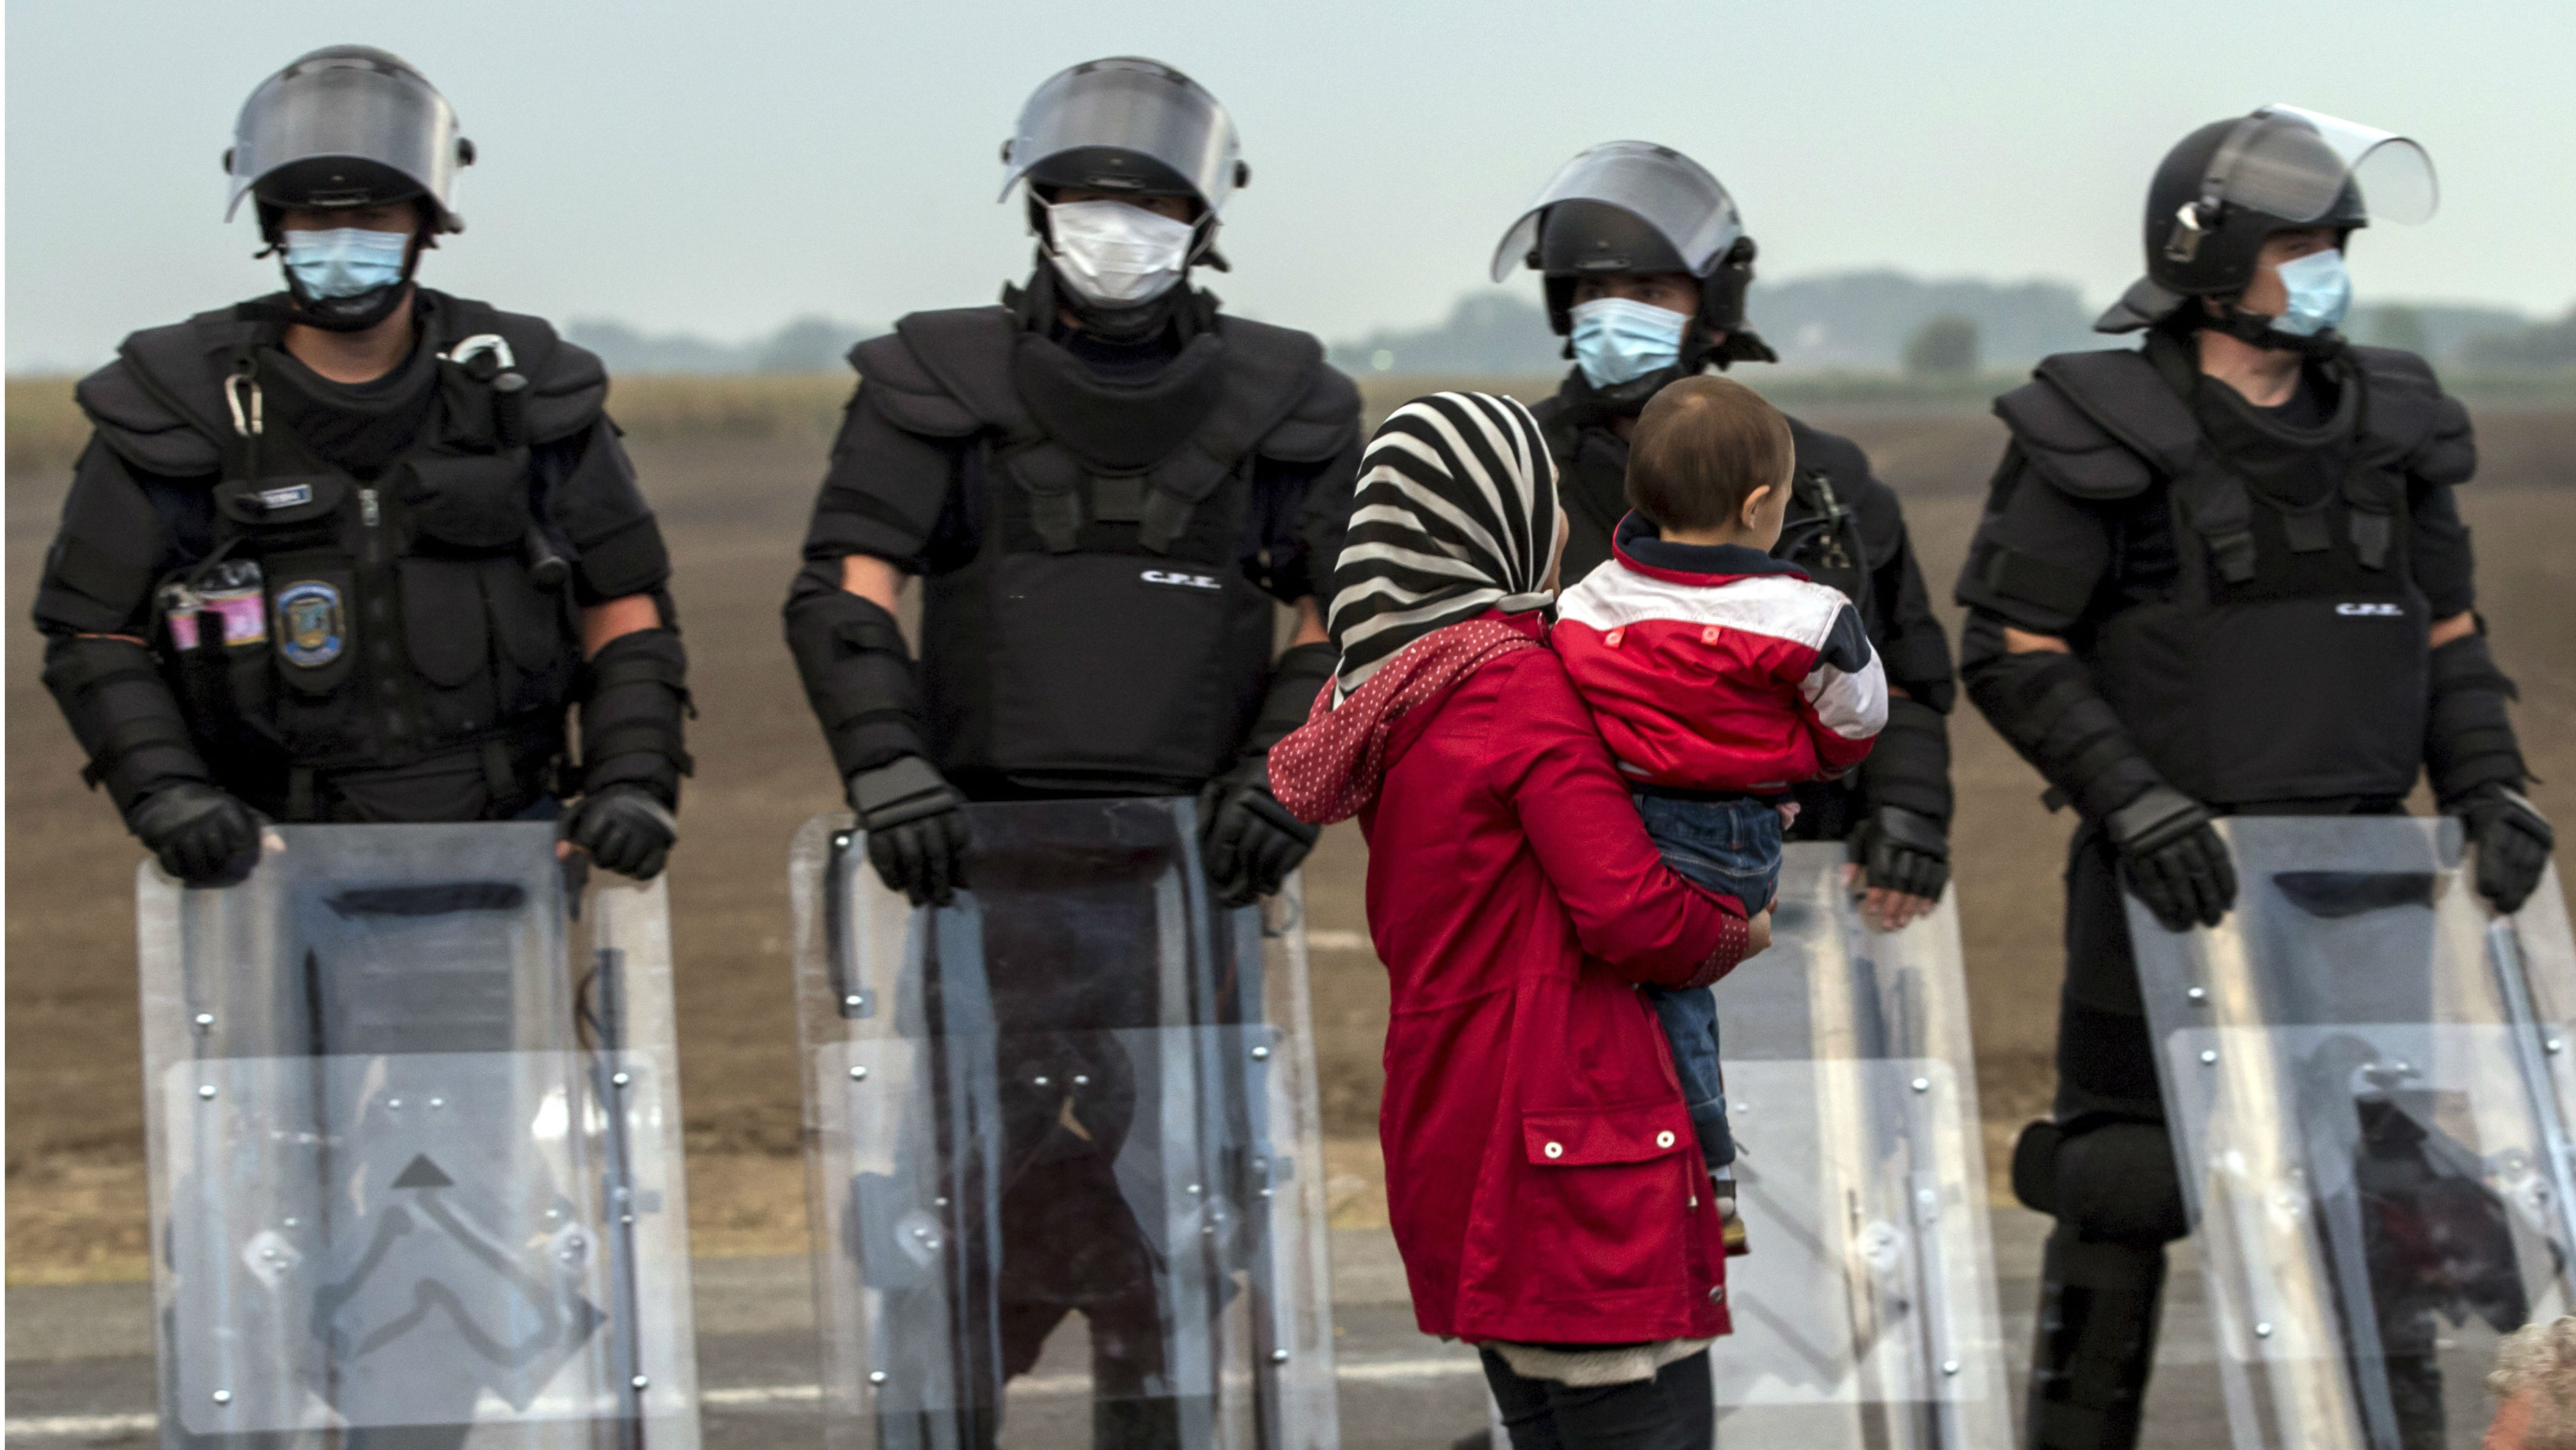 A migrant carries a child as she waits for a bus in front of riot police after crossing into Hungary from the border with Serbia on a field near the village of Roszke, September 5, 2015. Austria and Germany threw open their borders to thousands of exhausted migrants on Saturday, bussed to the Hungarian border by a right-wing government that had tried to stop them but was overwhelmed by the sheer numbers reaching Europe's frontiers. Left to walk the last yards into Austria, rain-soaked migrants, many of them refugees from Syria's civil war, were whisked by train and shuttle bus to Vienna, where many said they were resolved to continue on to Germany. REUTERS/Marko Djurica